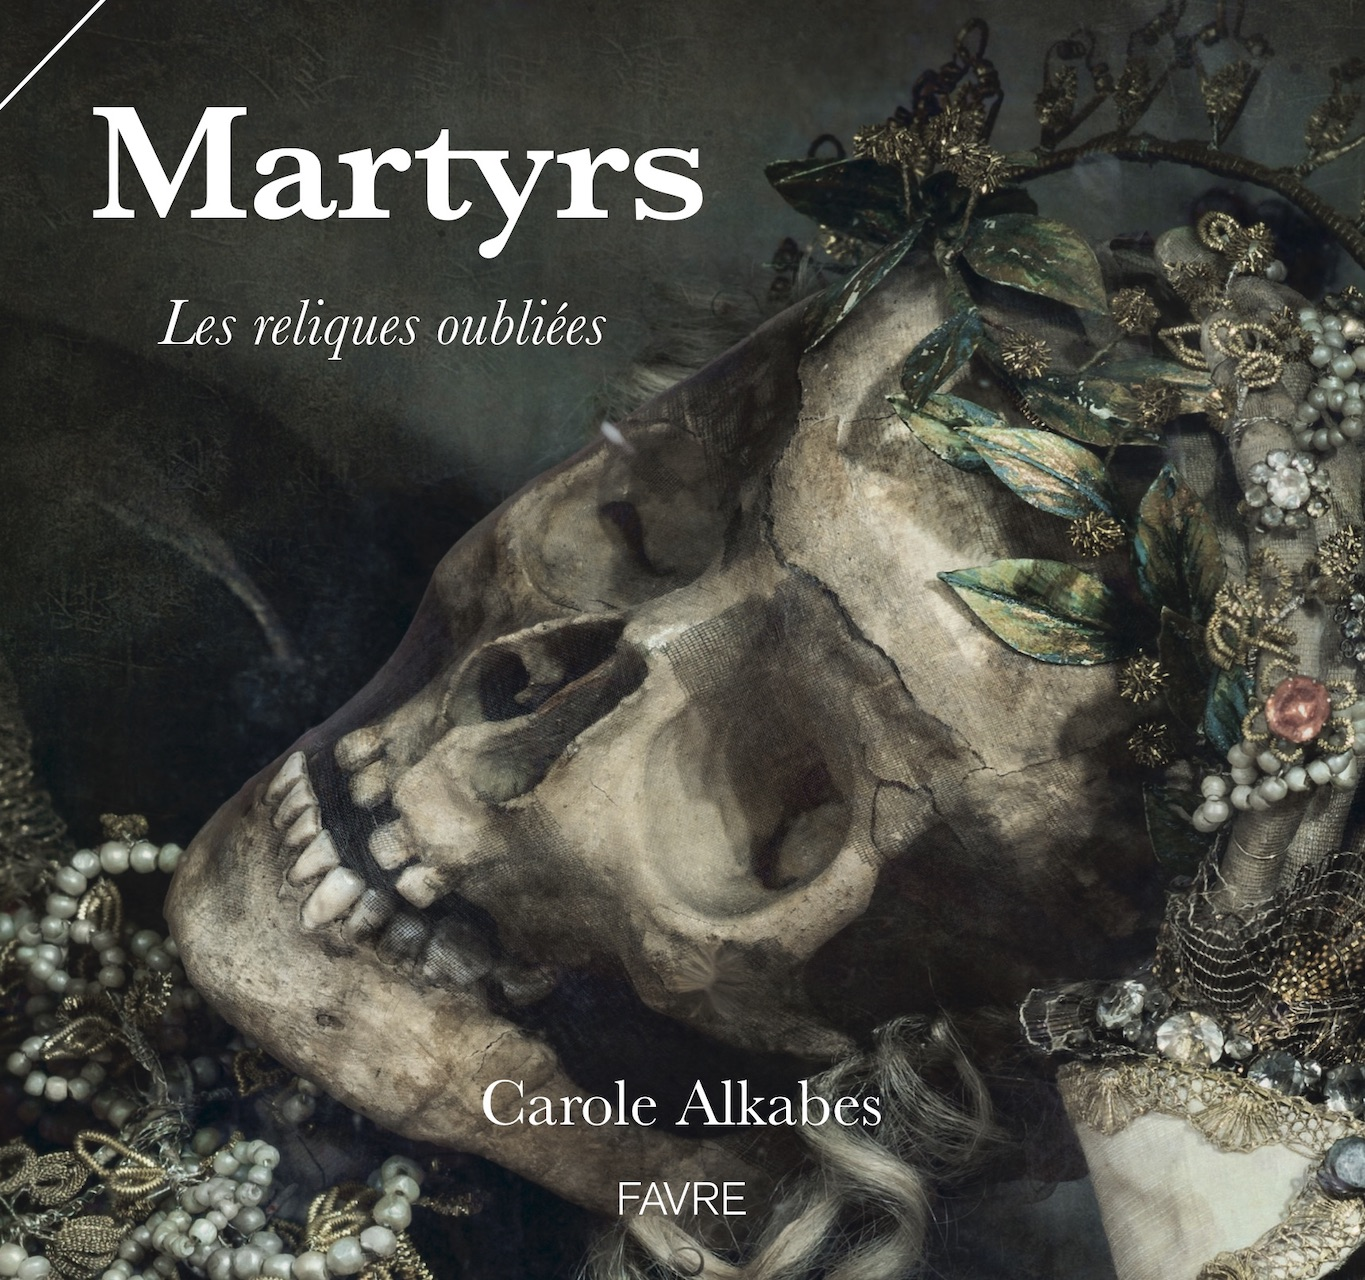 Couv Martyrs Copy.Jpg